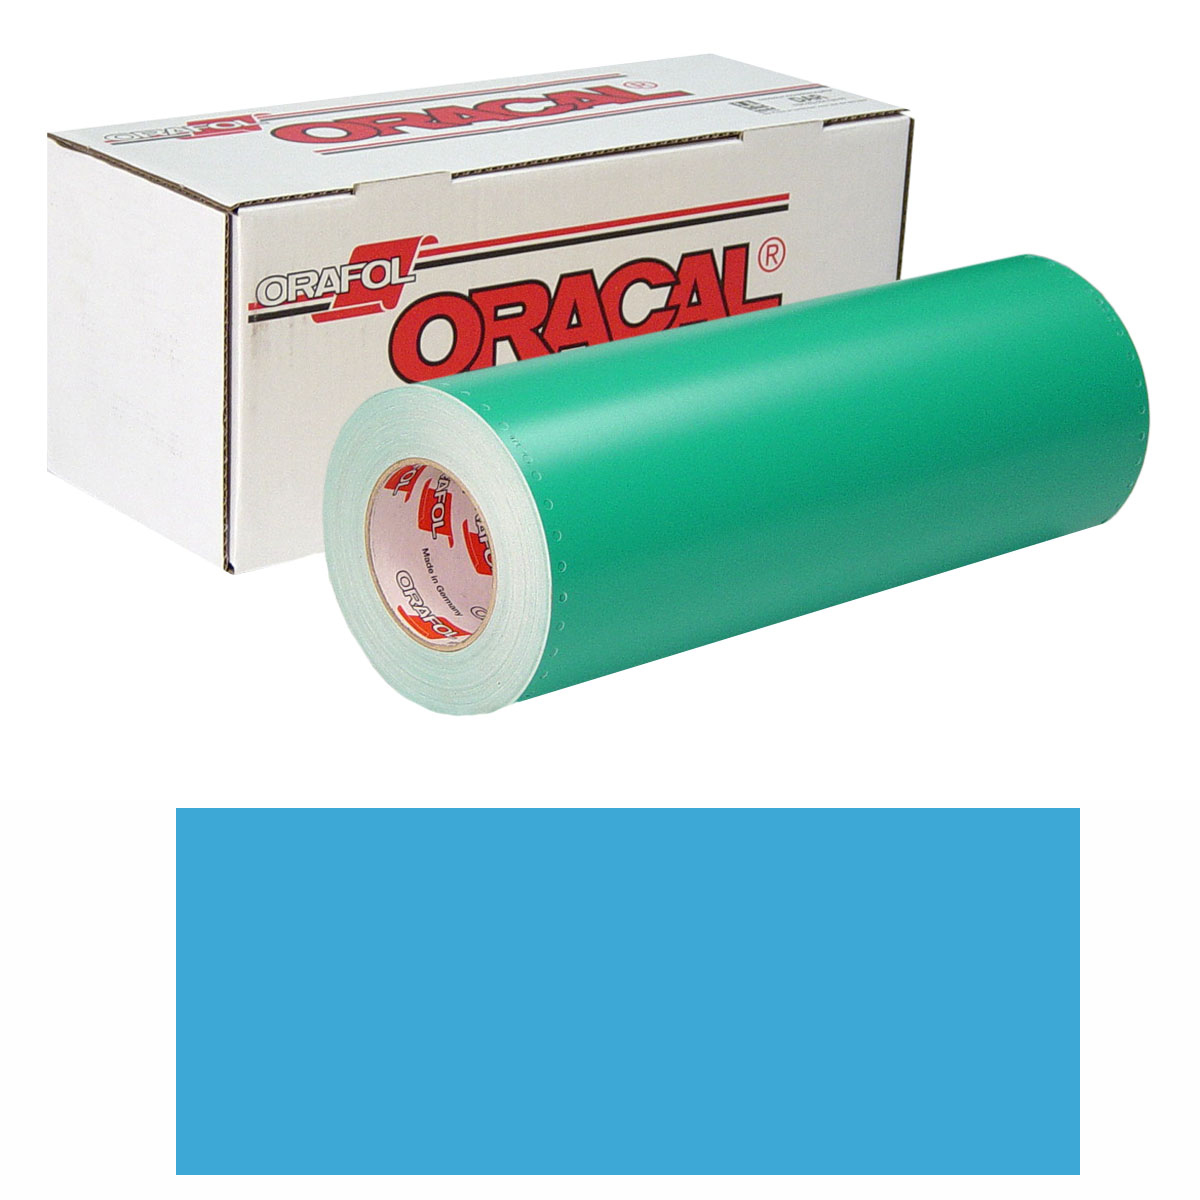 ORACAL 8500 Unp 24In X 50Yd 053 Light Blue